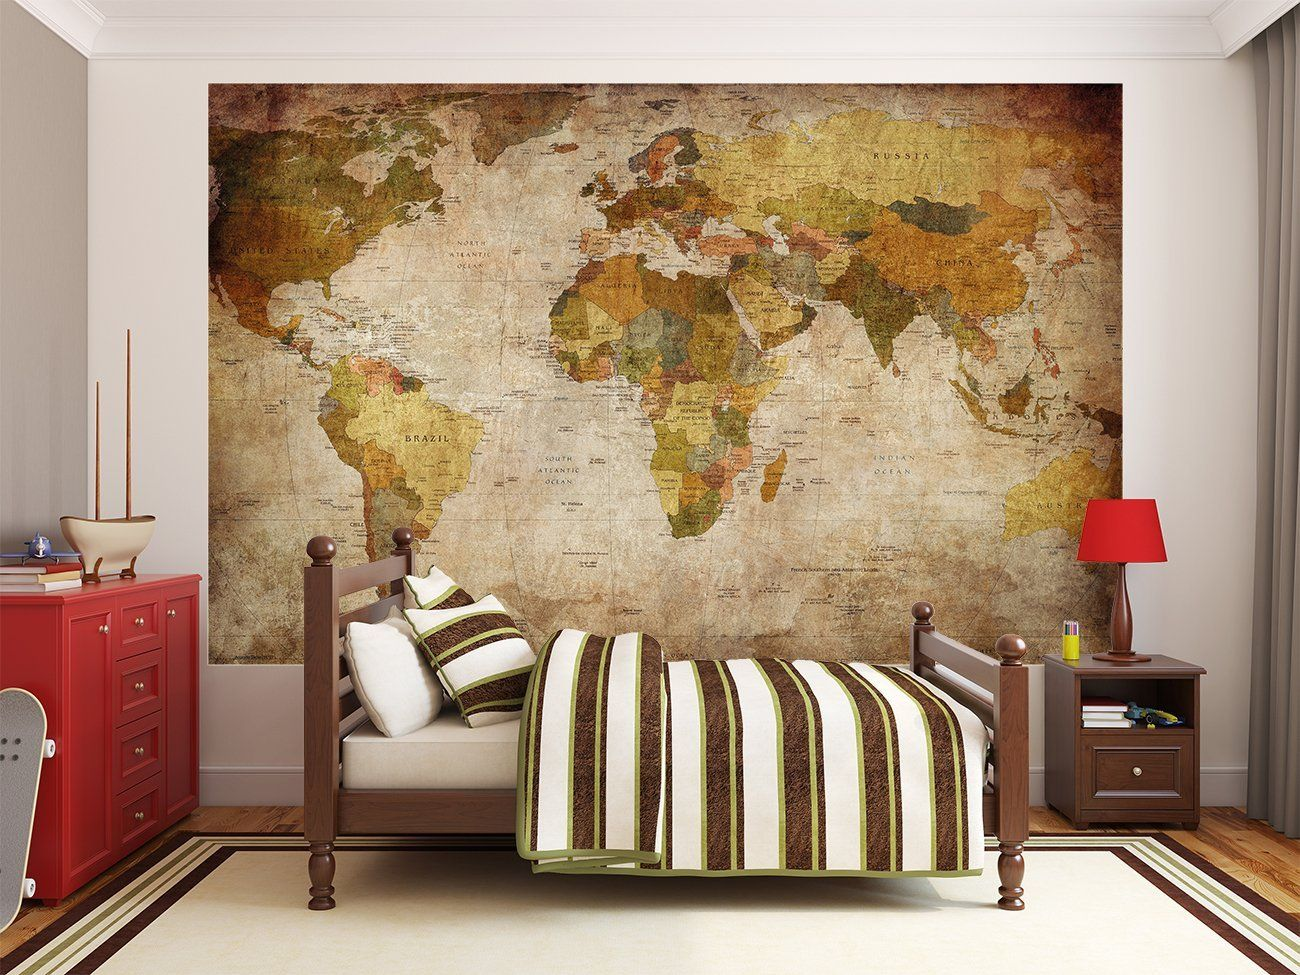 papier peint photo mappemonde motif vintage retro. Black Bedroom Furniture Sets. Home Design Ideas